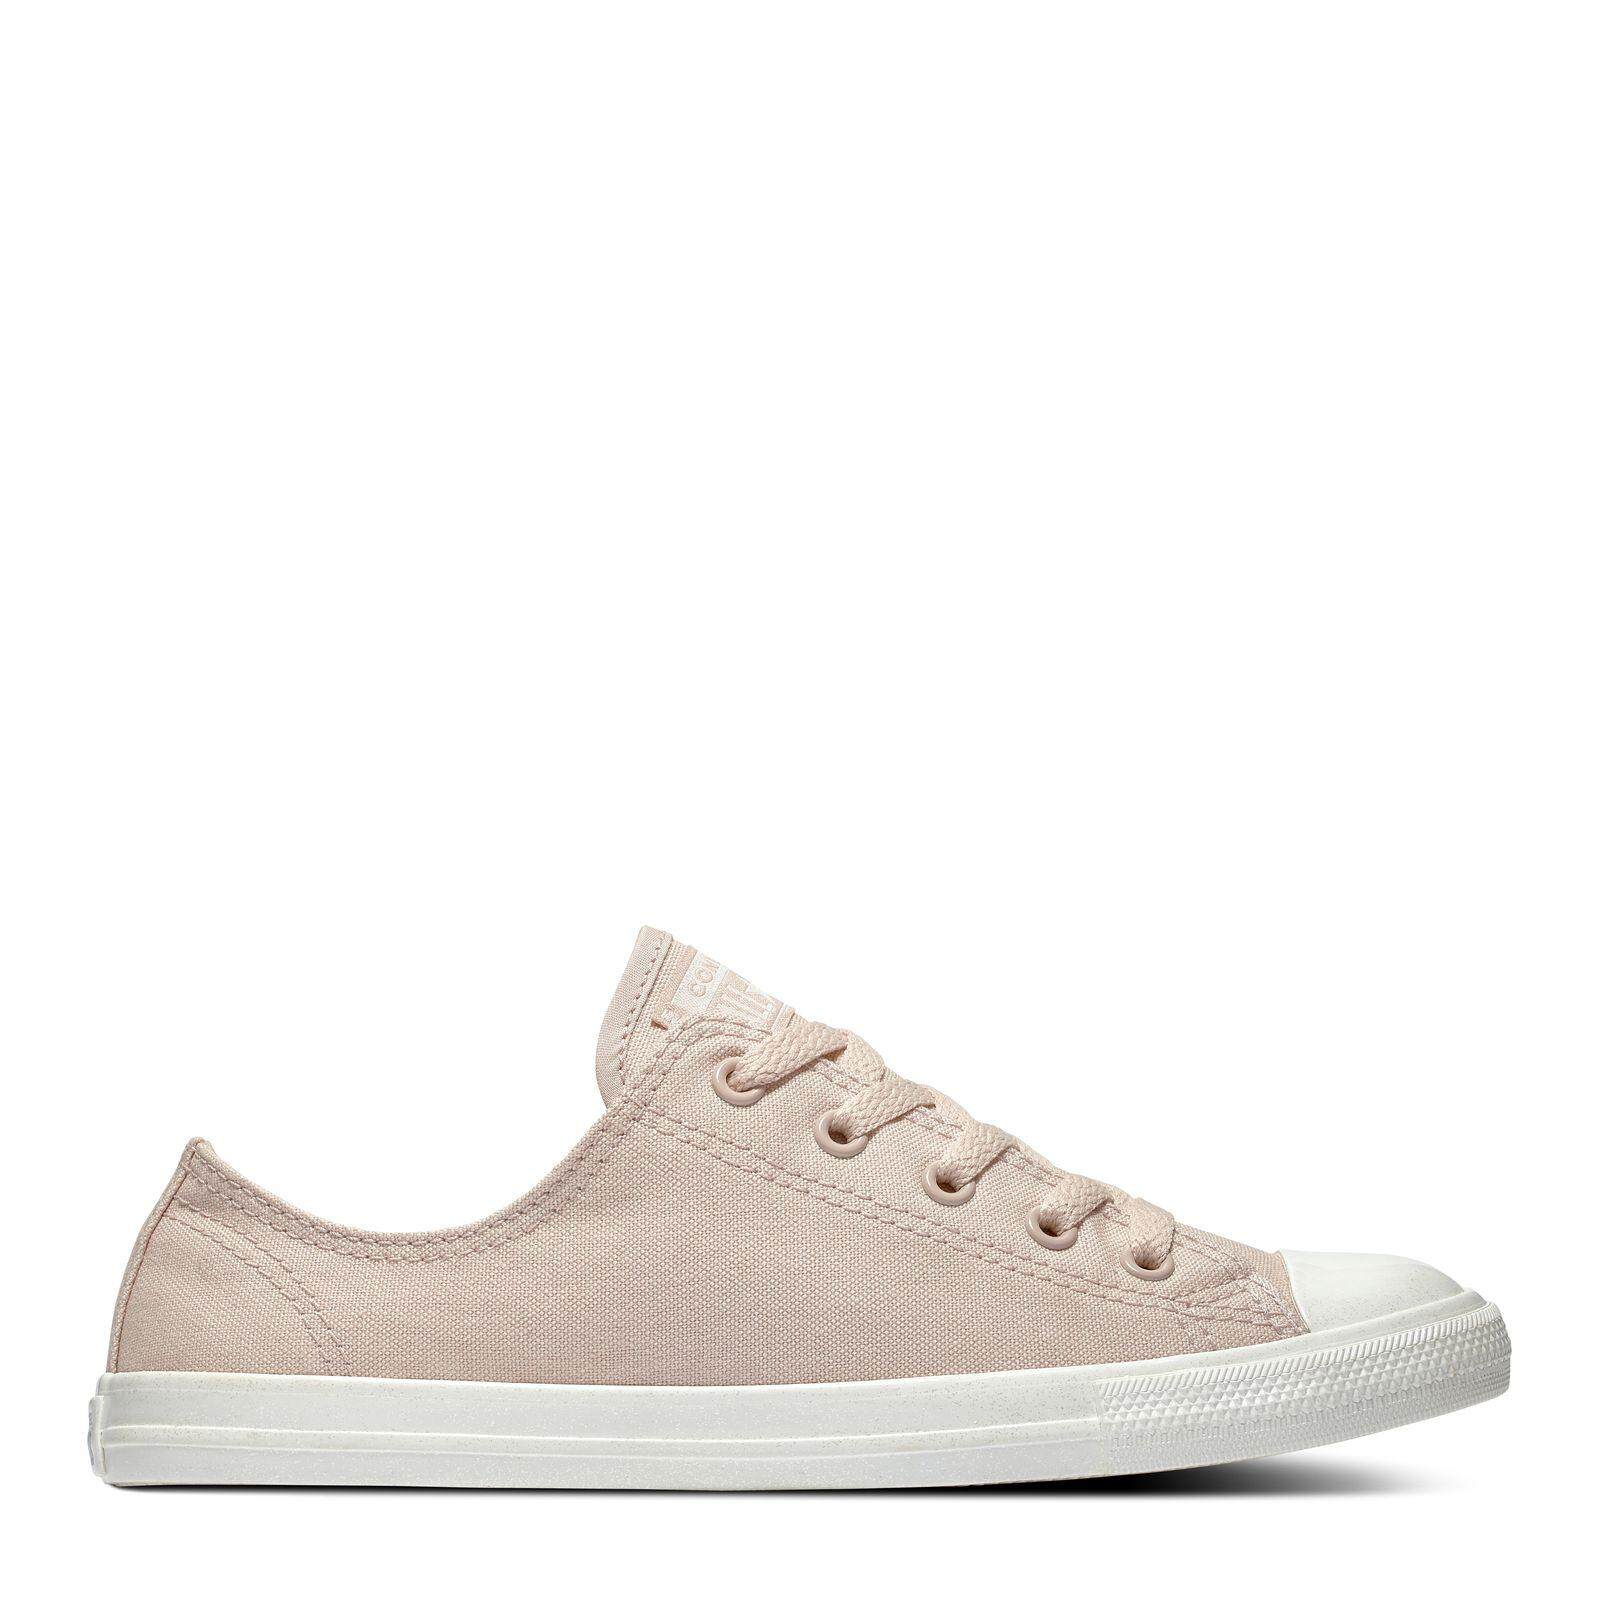 Hard Wearing Womens Converse Canvas Shoes All Star Ox